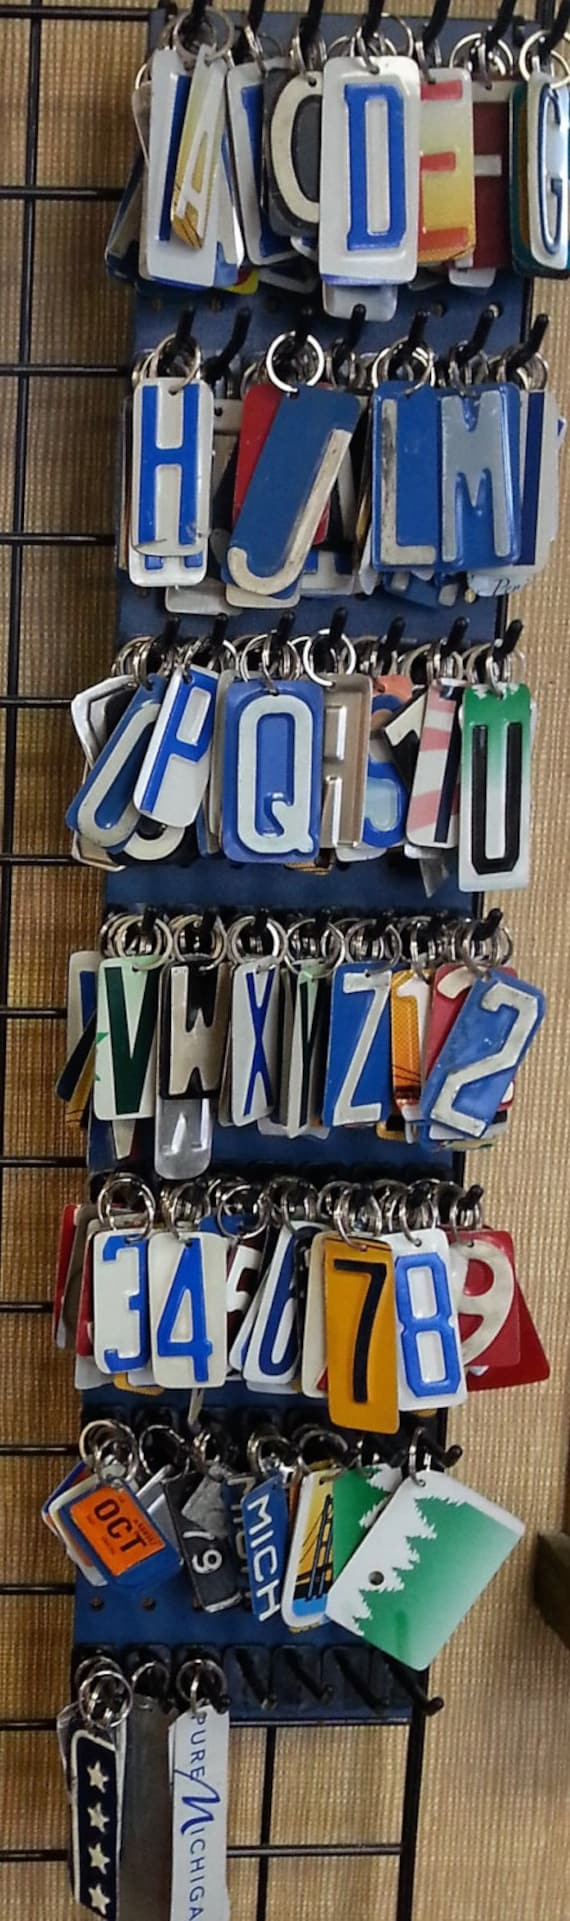 Key Chain, Handcrafted from Recycled License Plates, Letter key rings, Number key rings, license plate key ring, letter/ number Key chains